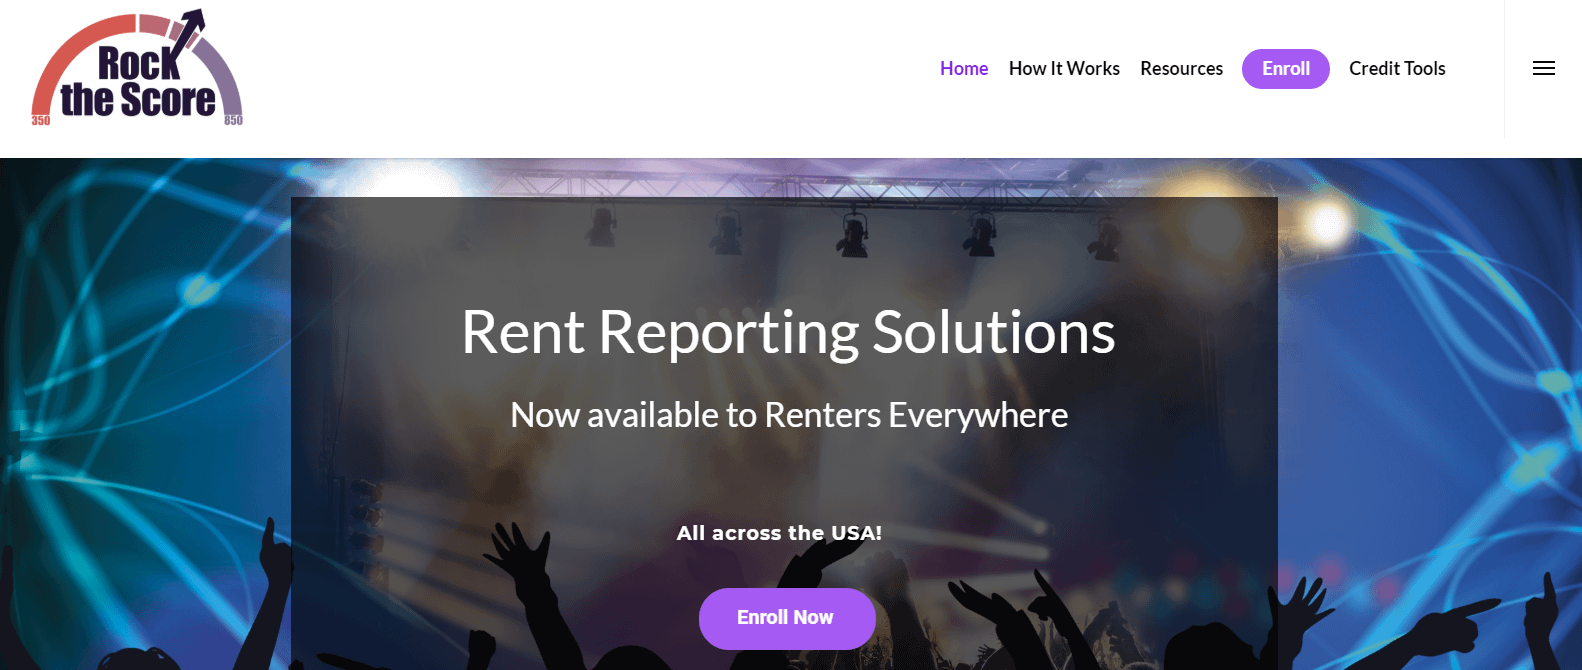 rock the score rent reporting